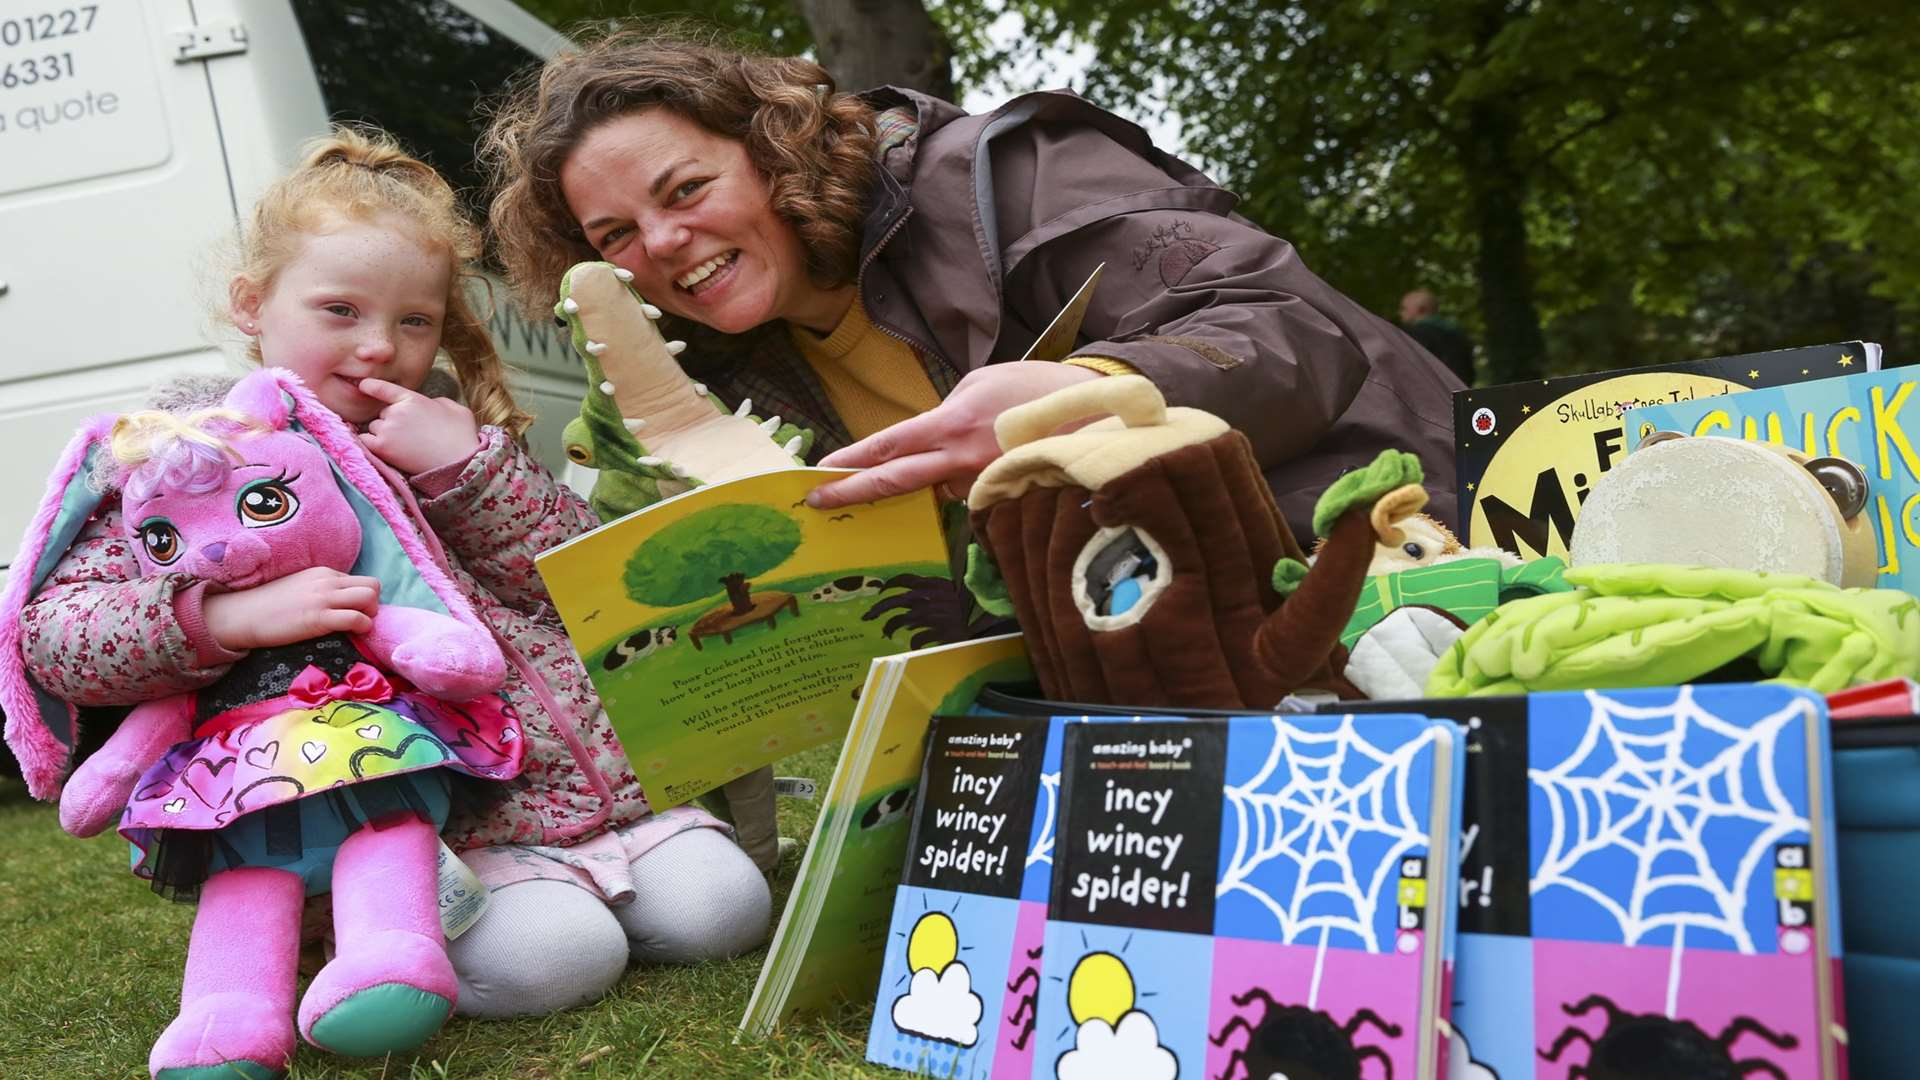 Emily Guille-Marrett, founder of Reading Fairy, pictured at the family event Buster's Big Bash which is run by the KM Charity Team each May.